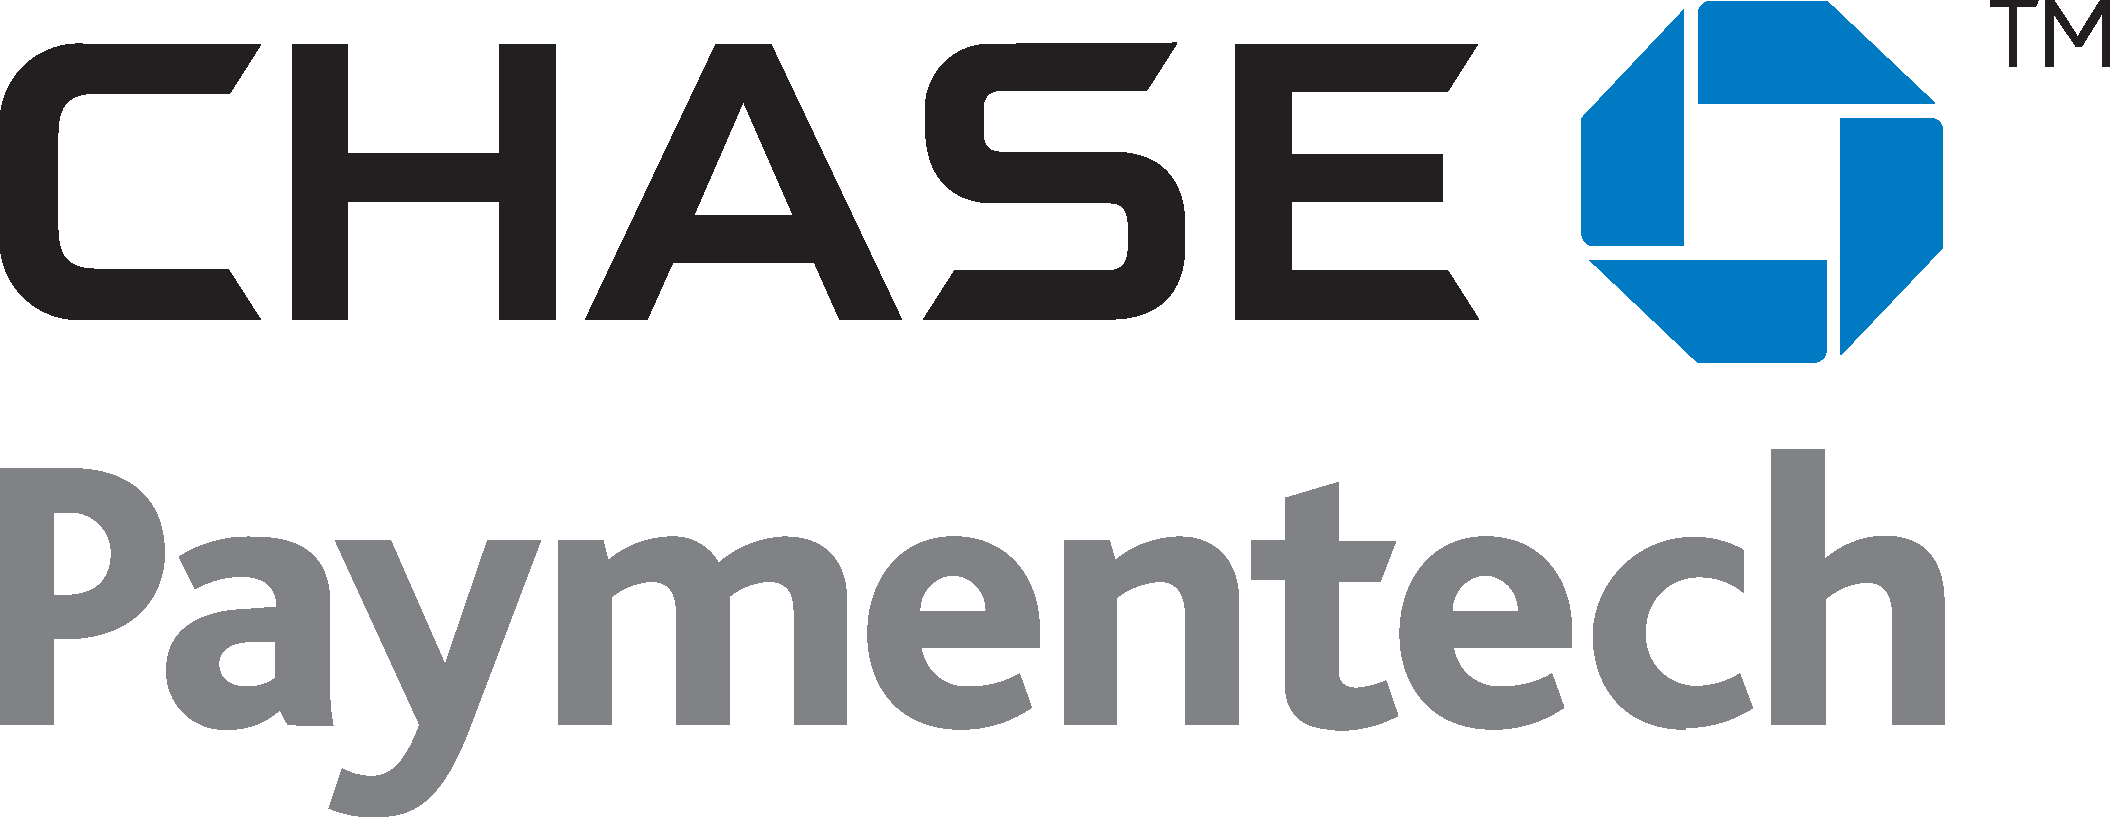 Chase Paymentech Logo png